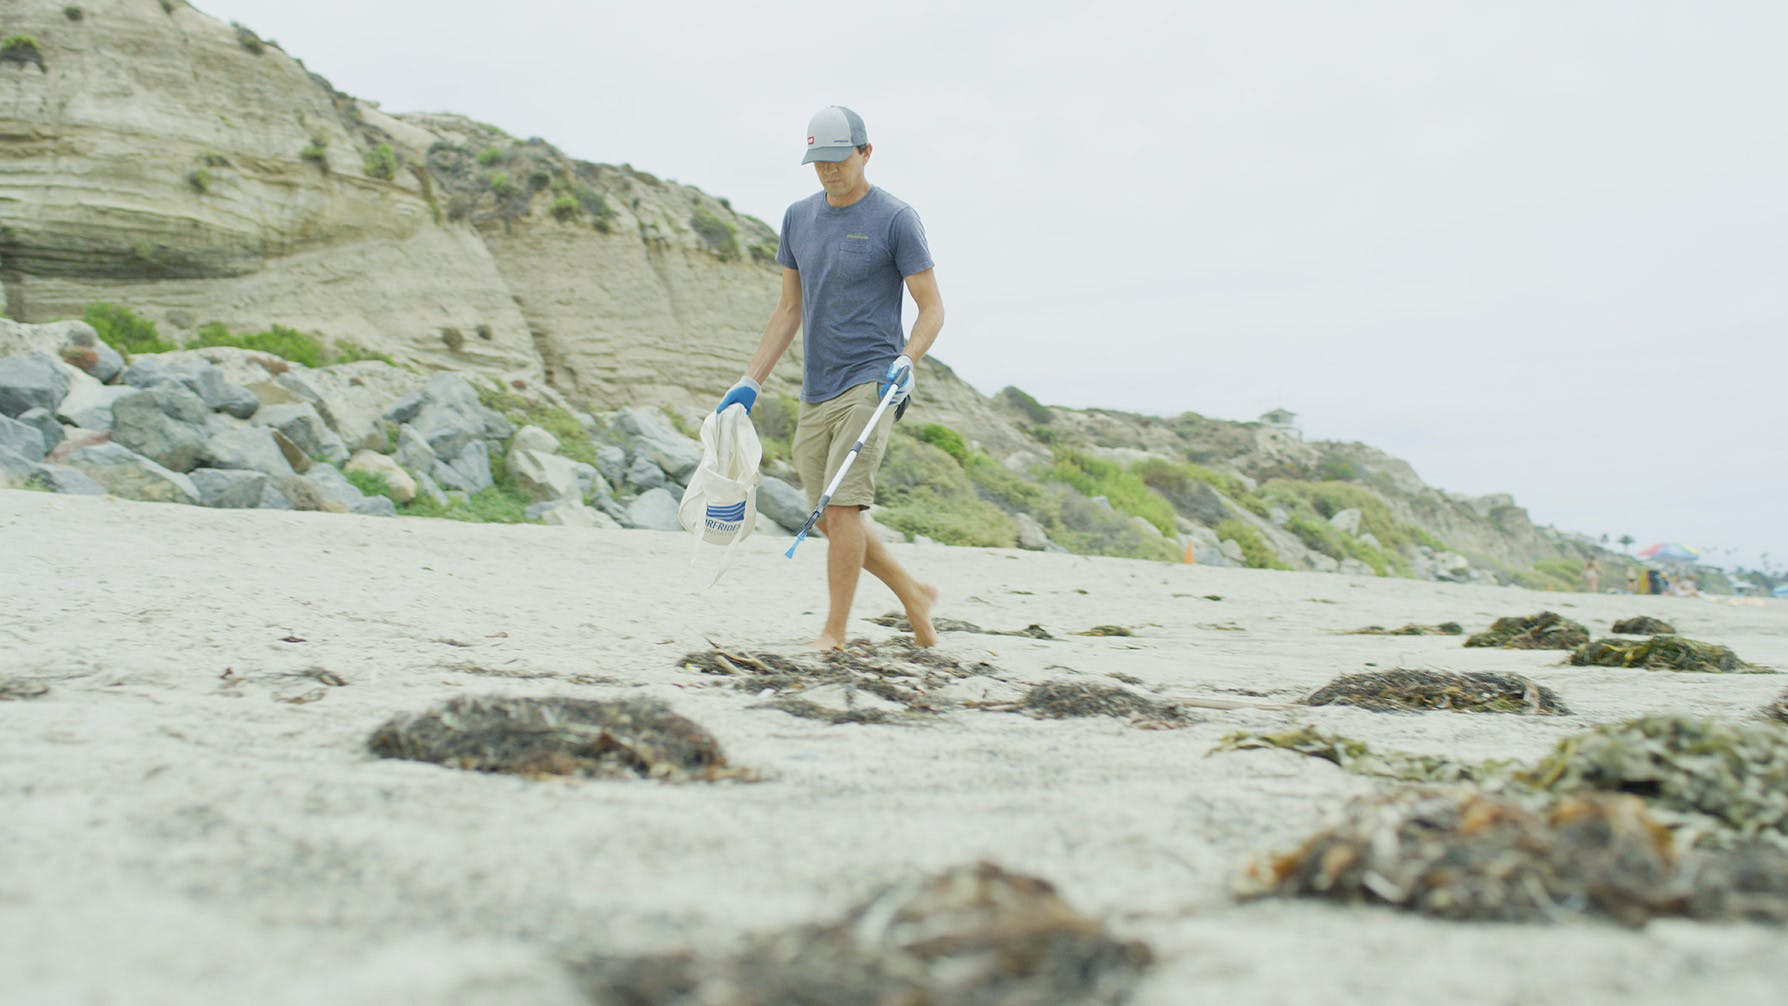 World Cleanup Day volunteer picking up trash on the beach